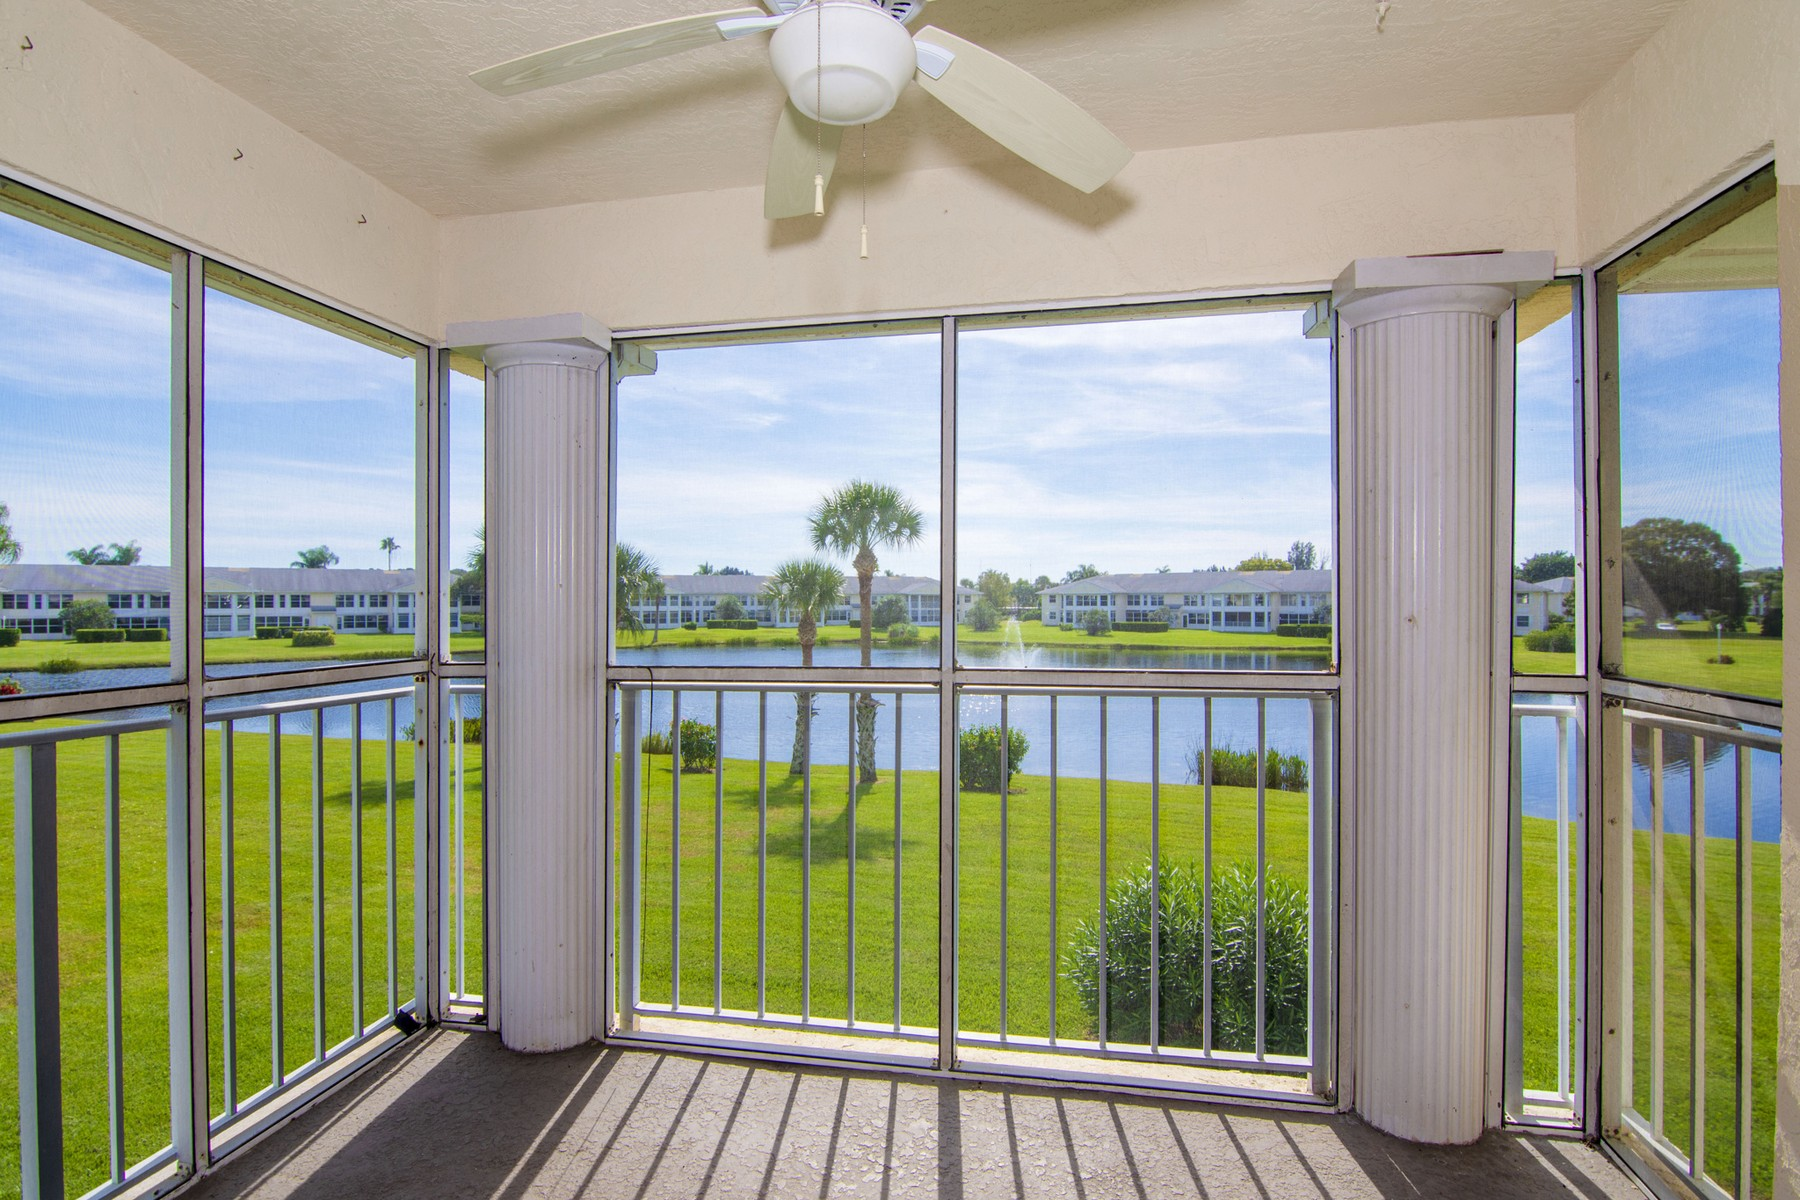 Additional photo for property listing at Florida Style Living at its Best! 223 N Grove Isle Circle #223 Vero Beach, Florida 32962 United States